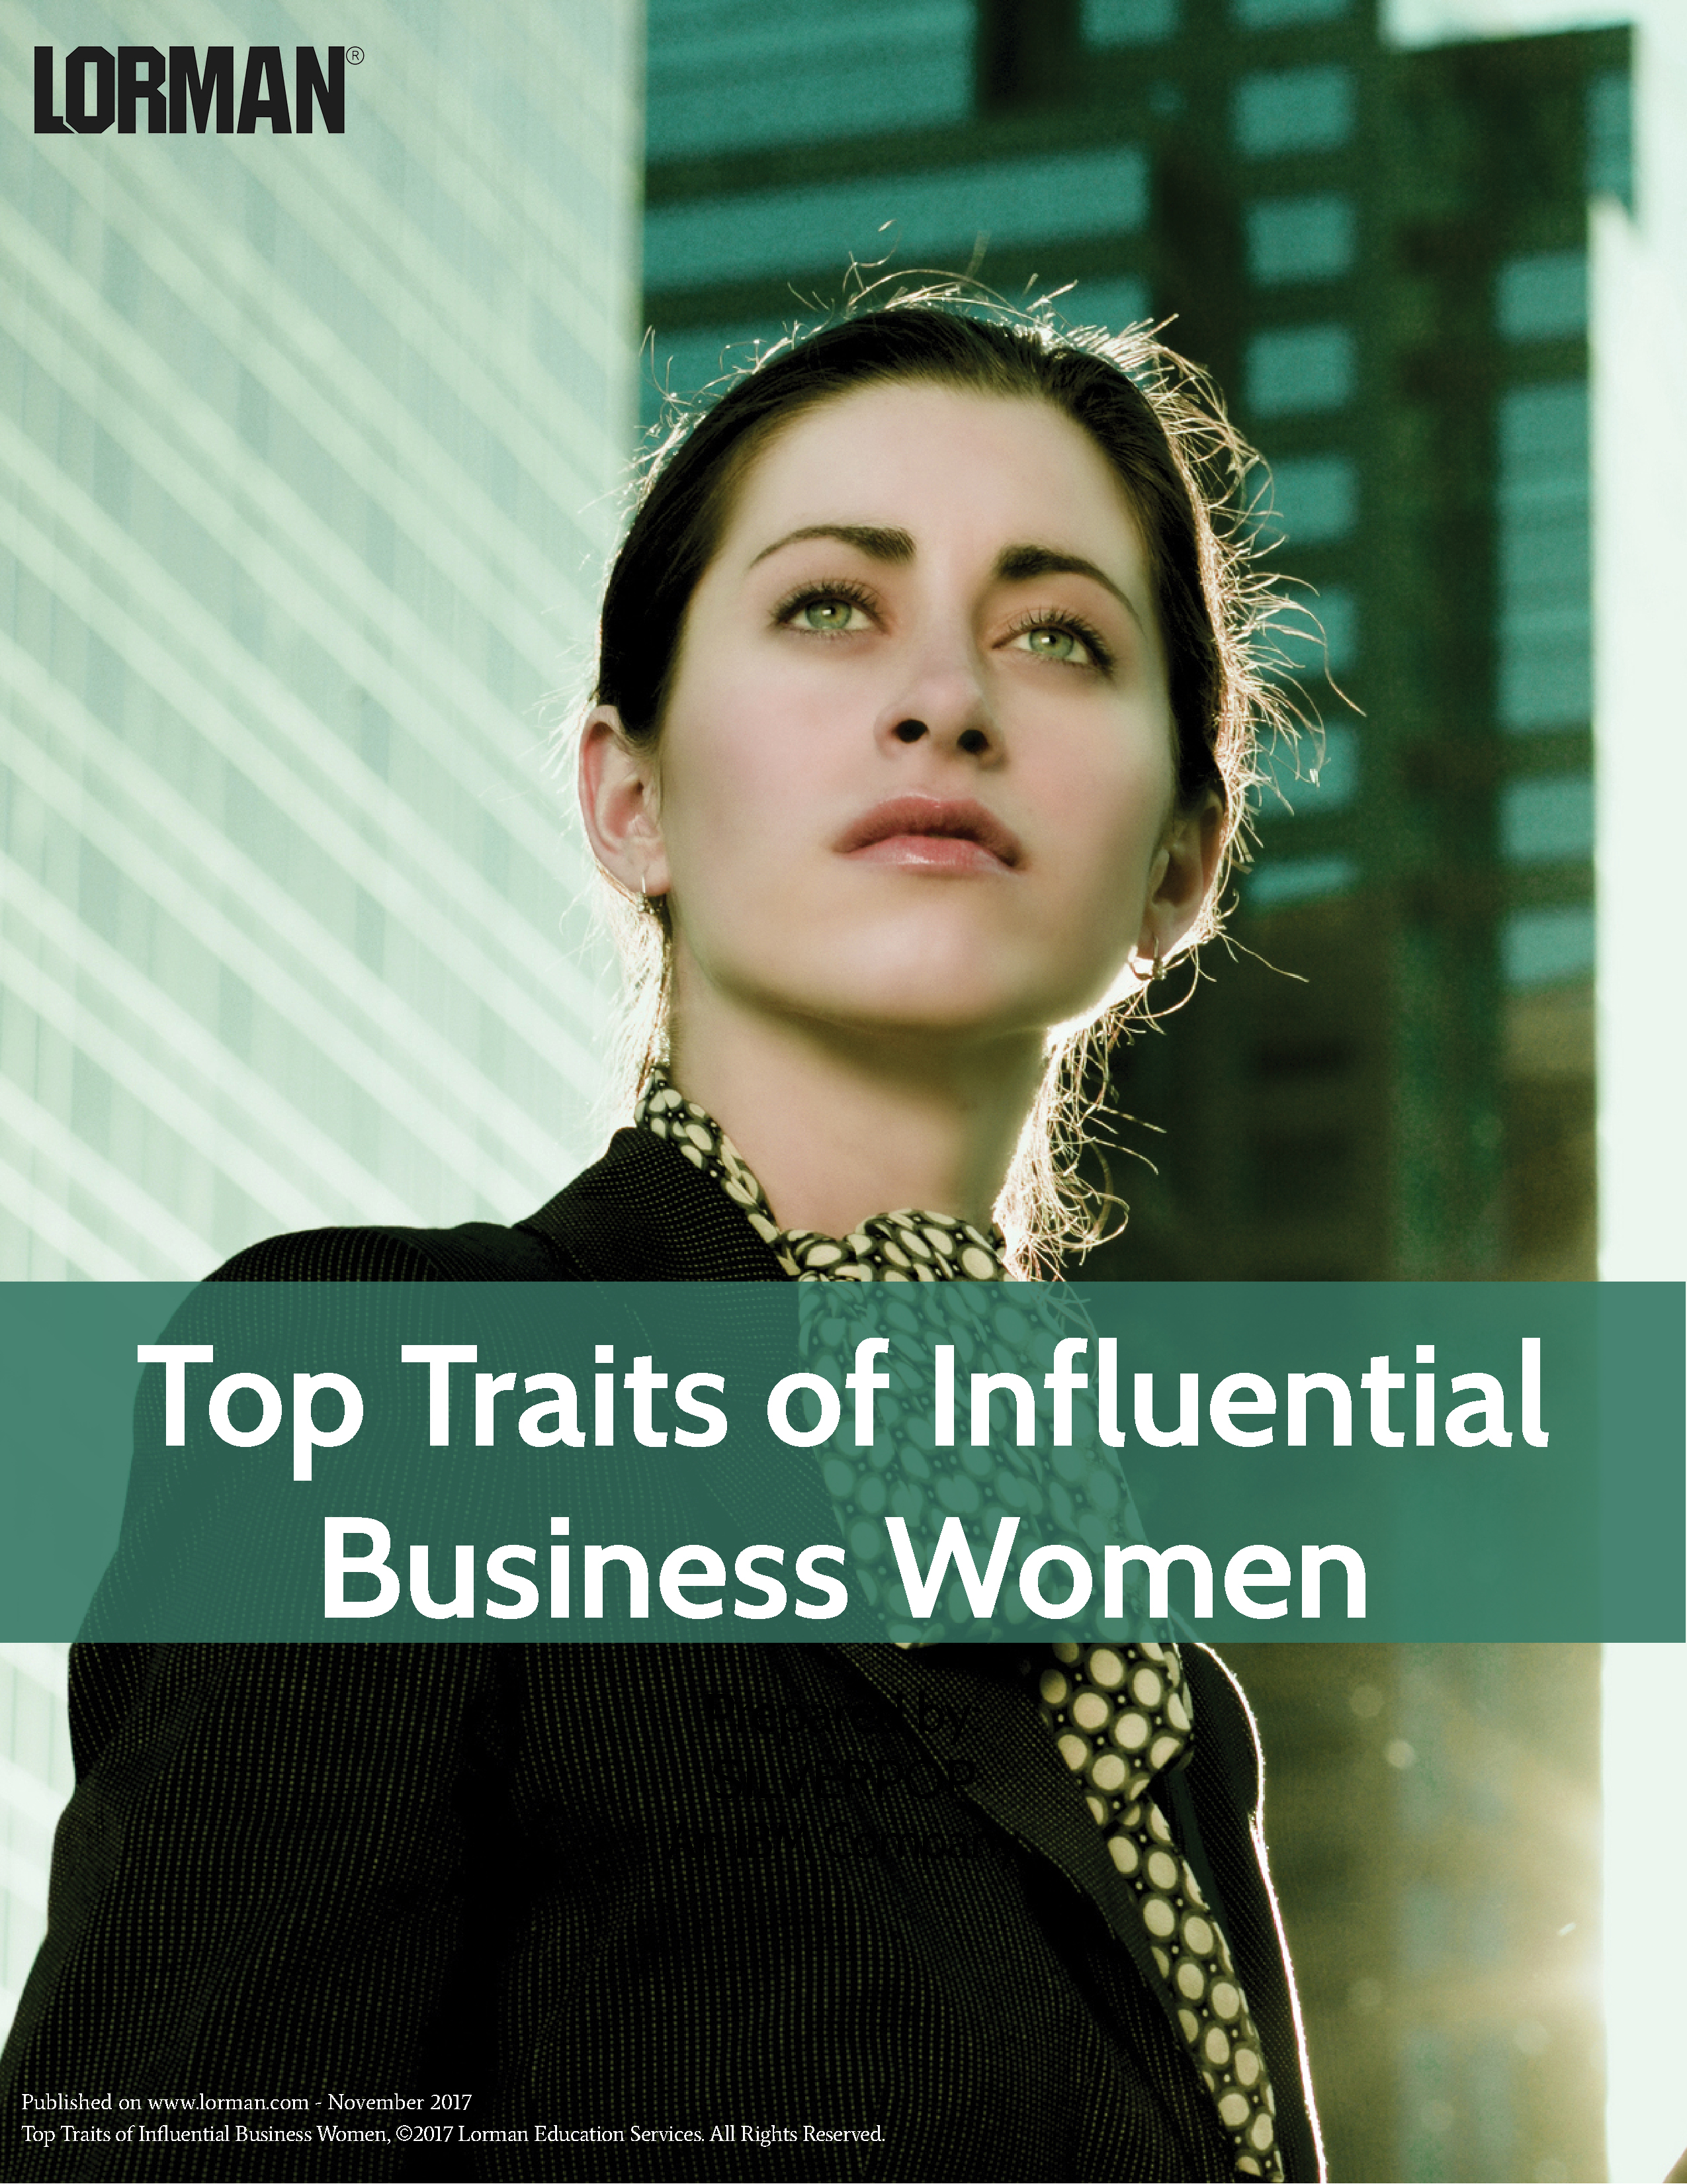 Top Traits of Influential Business Women